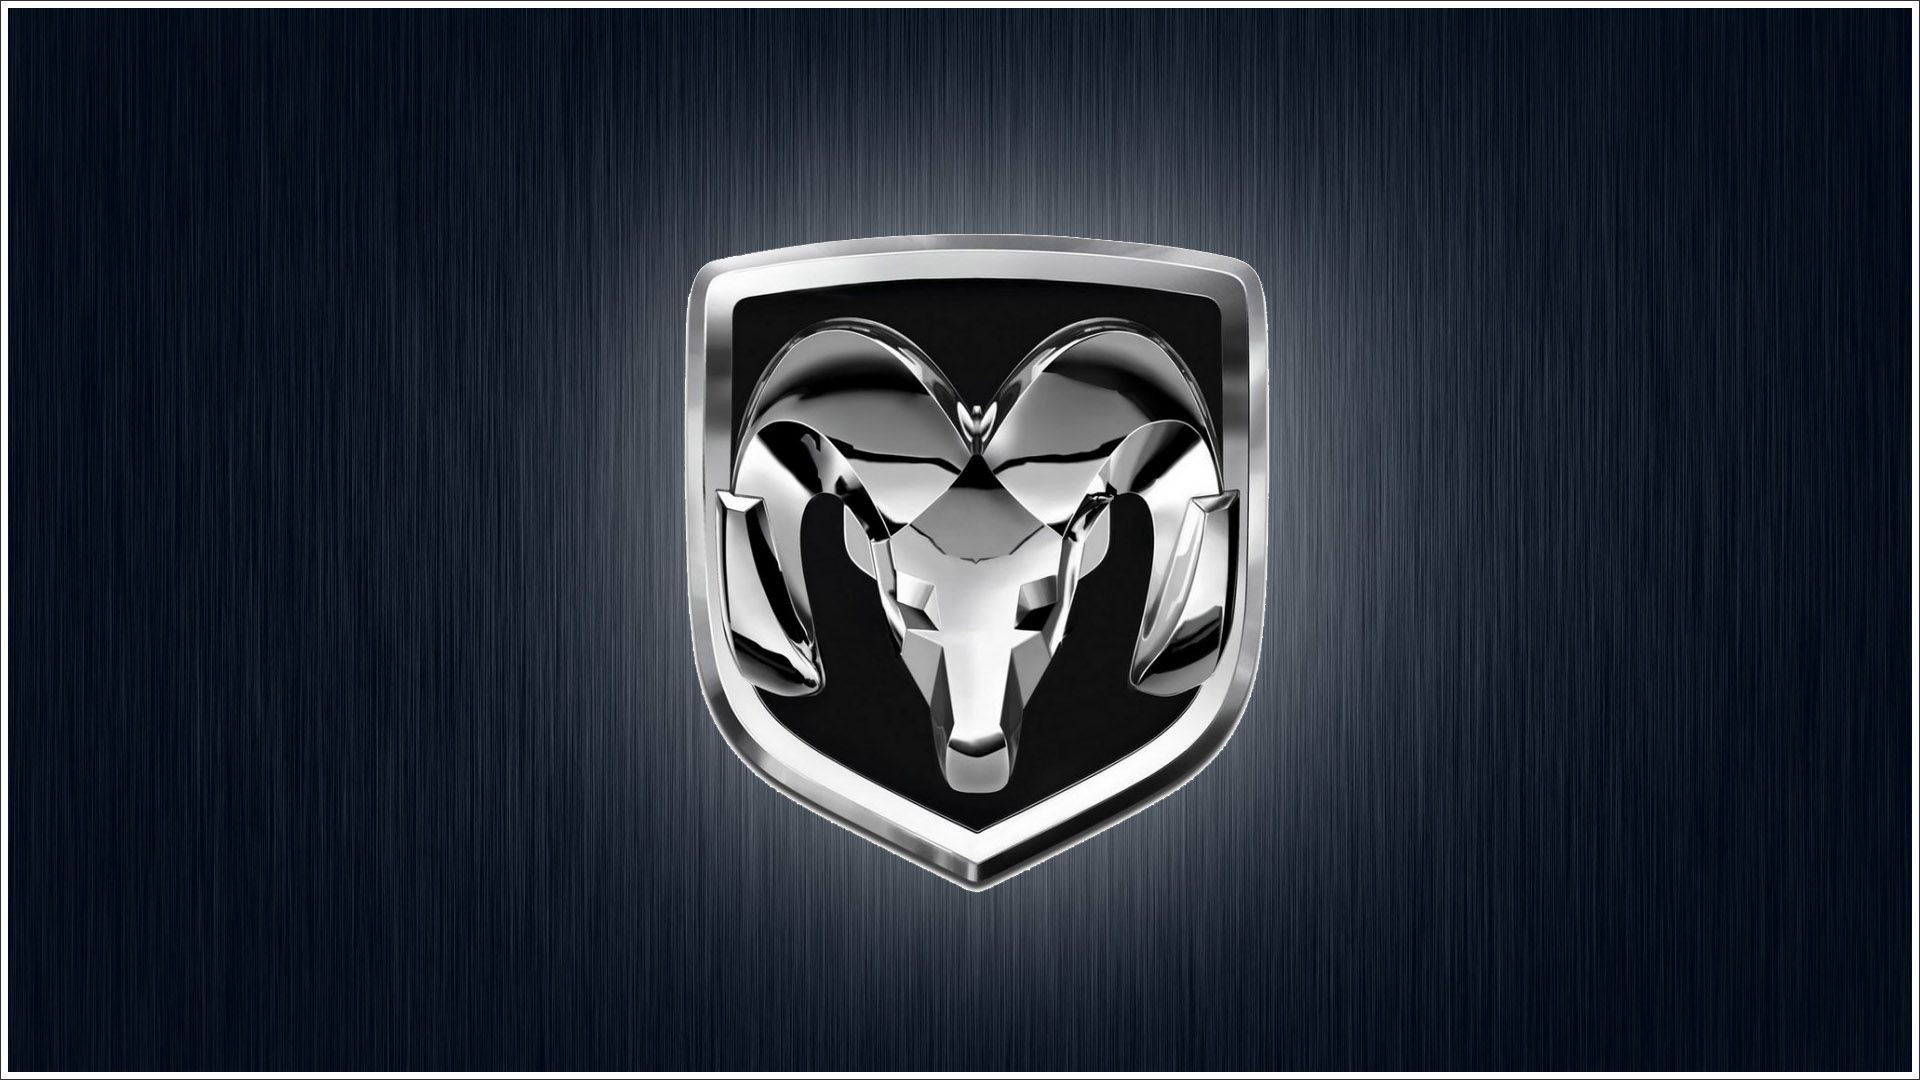 Ram Srt 10 >> Dodge Ram Logo Wallpaper HD (57+ images)